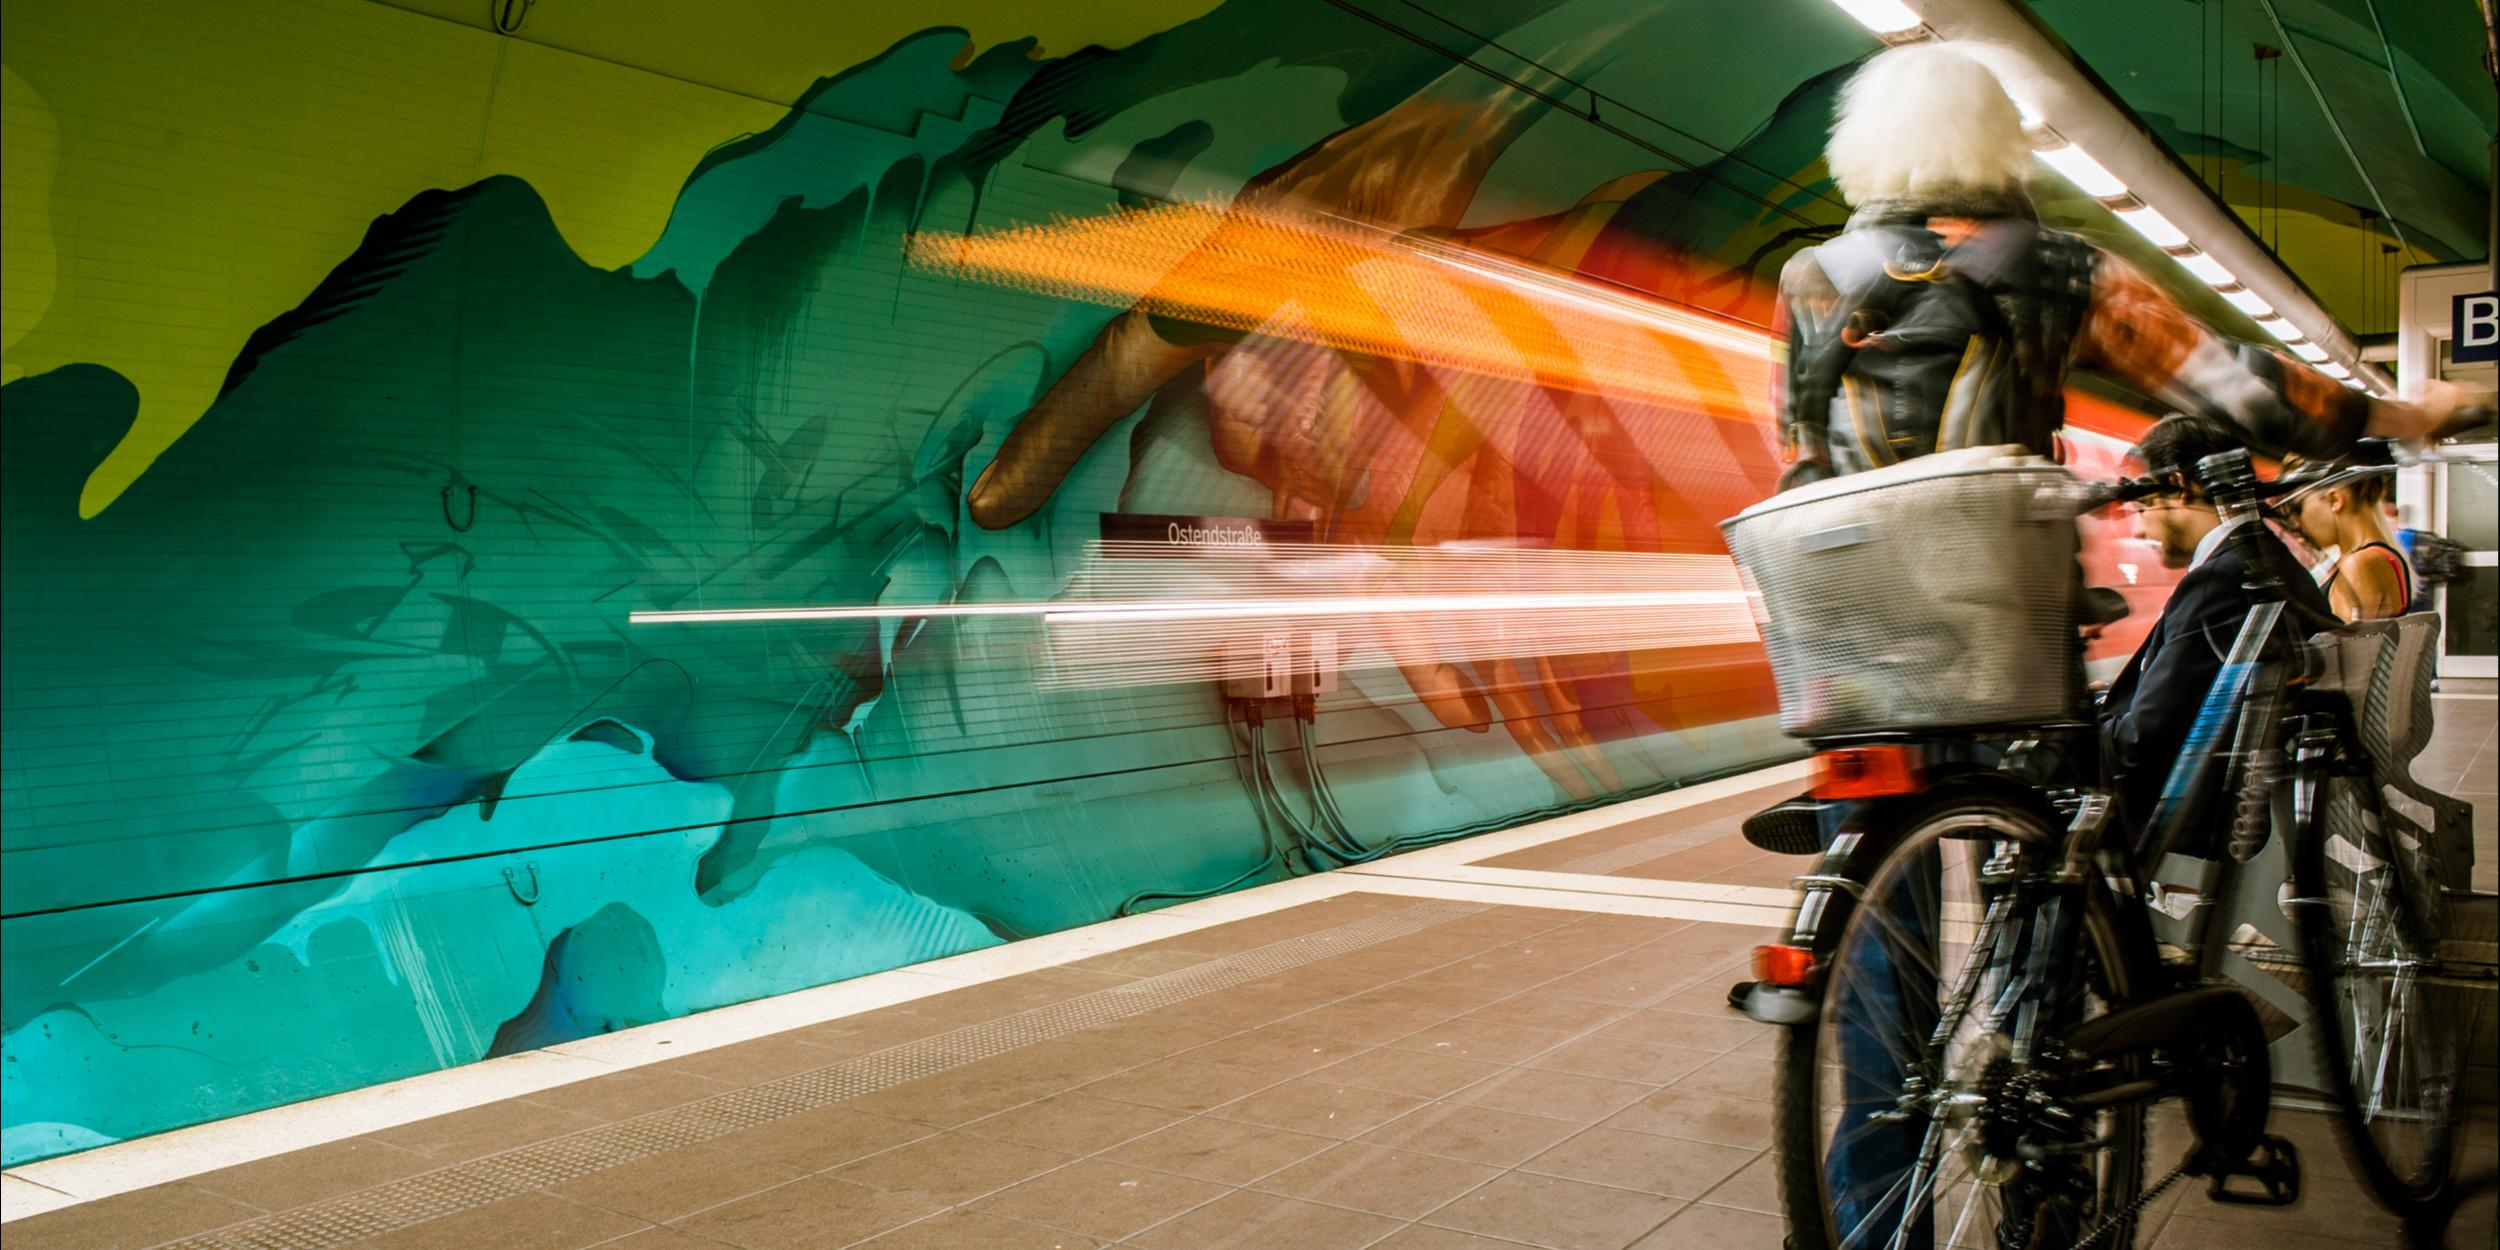 A work by Does - Ostendstrasse frankfurt germany tunnel 37